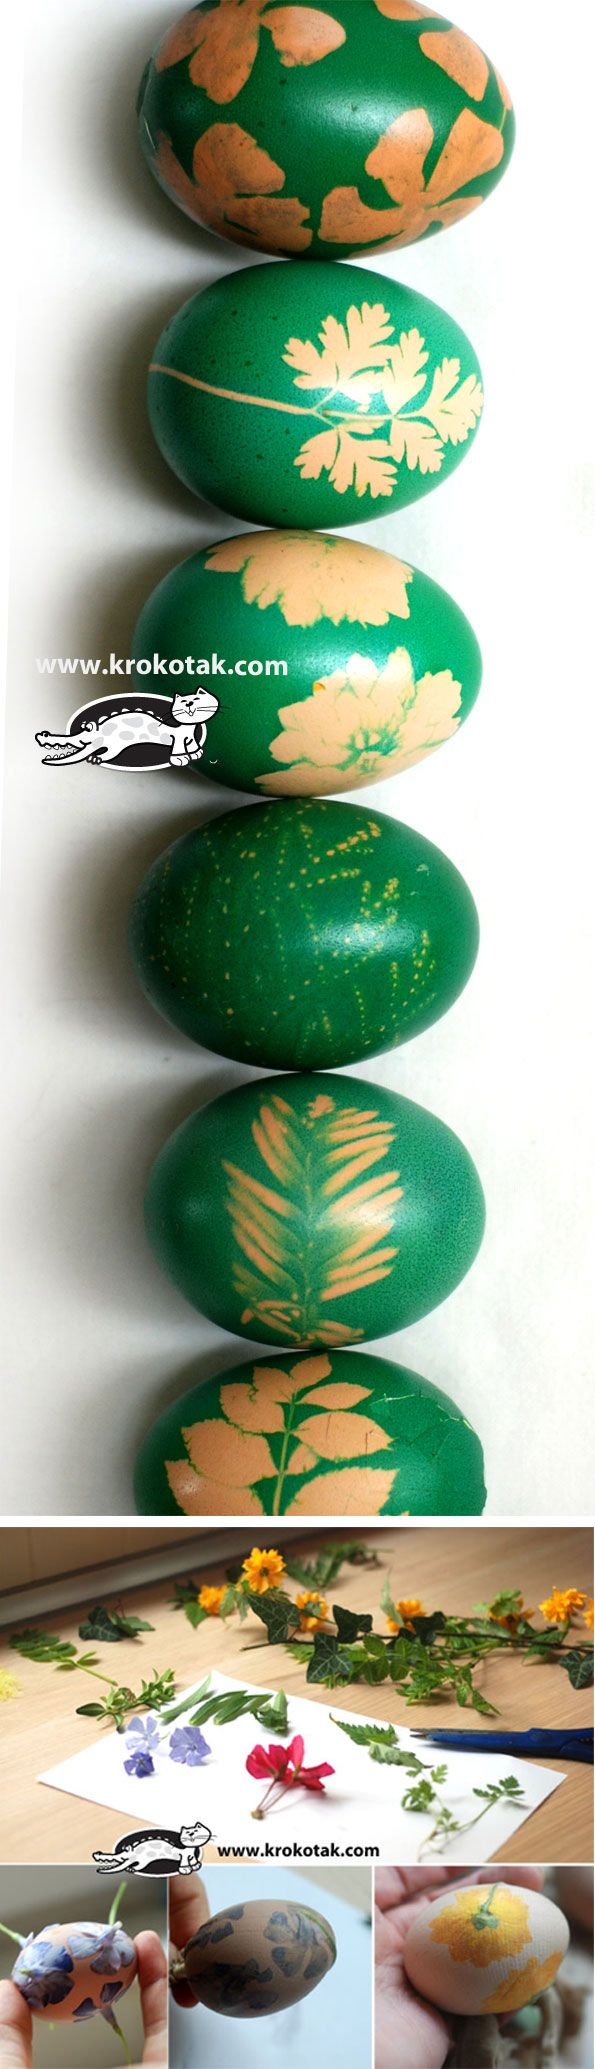 Tradition in green – egg dyeing with grass and flowers